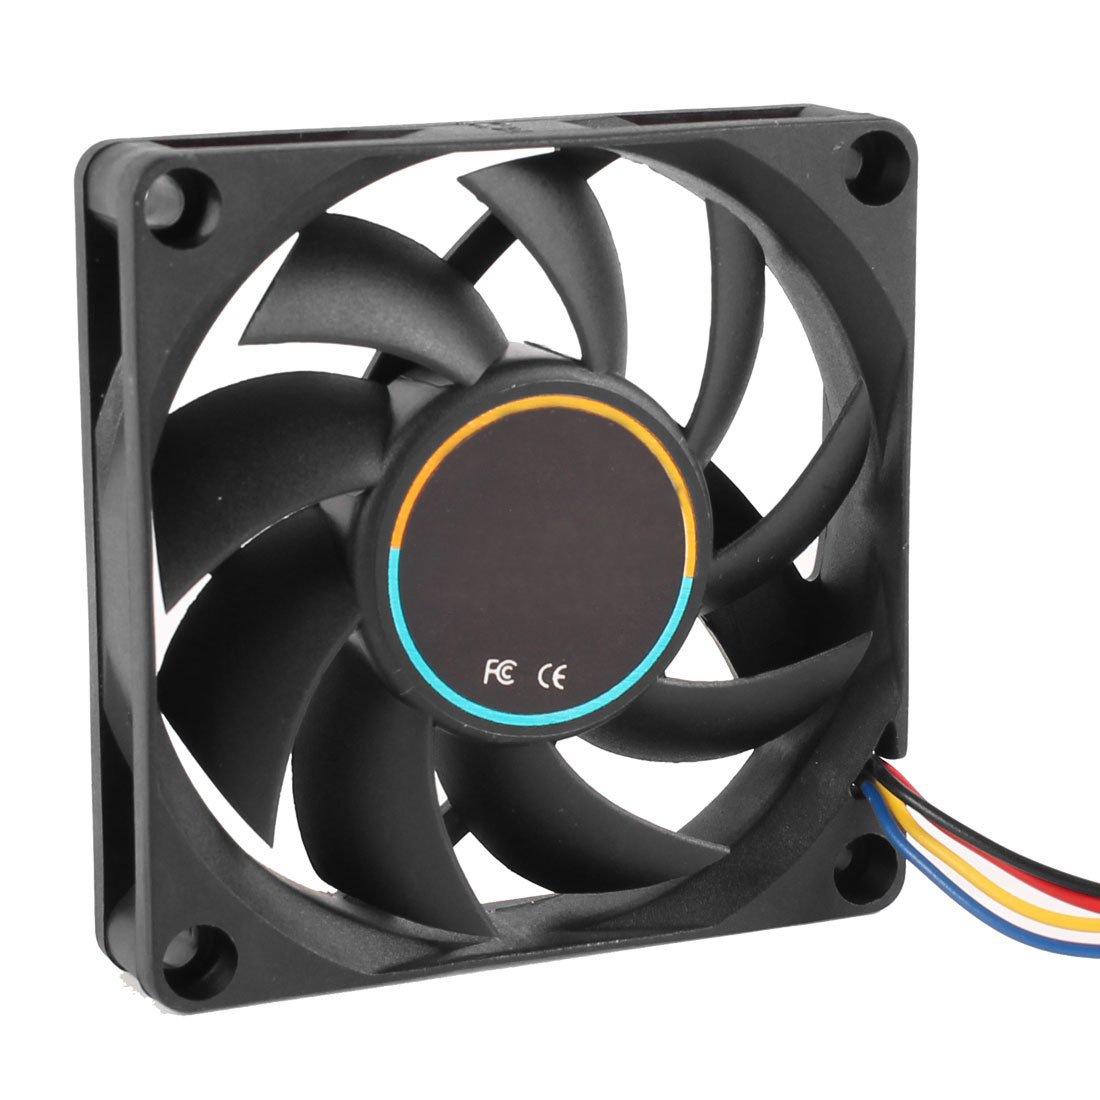 OUYAWEI Top PC Fan 12V 12cm Cooling Cooler Fan with Controller for Computer Silent Gaming Case Green Light